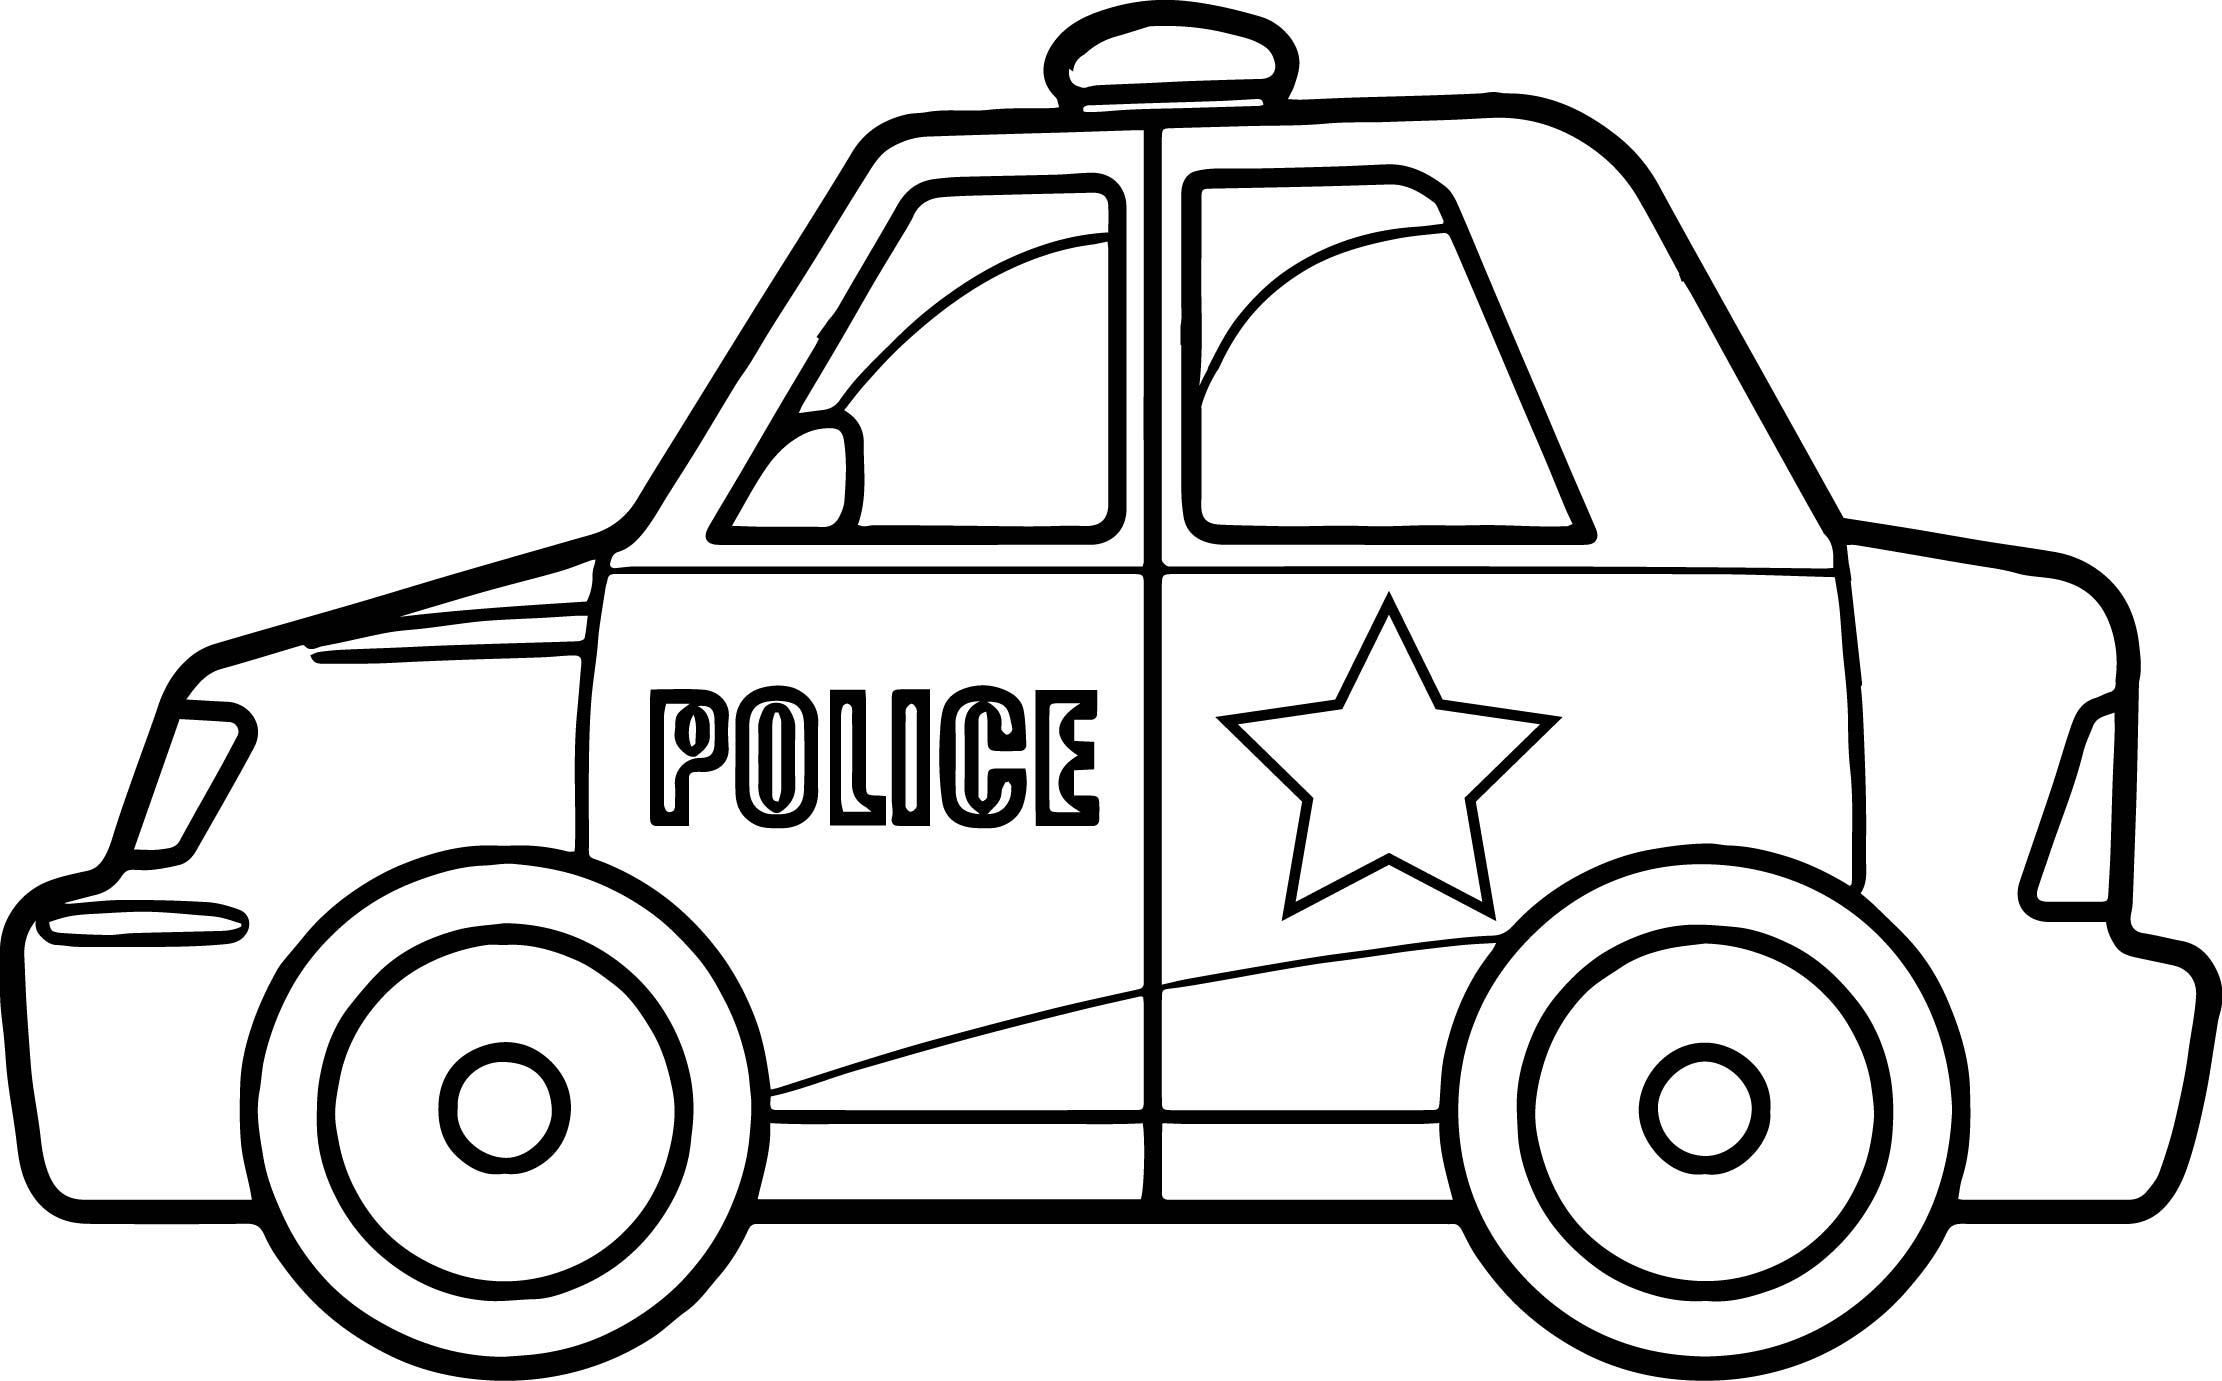 Police Car Coloring Pages Super Police Car Coloring Page  Wecoloringpage